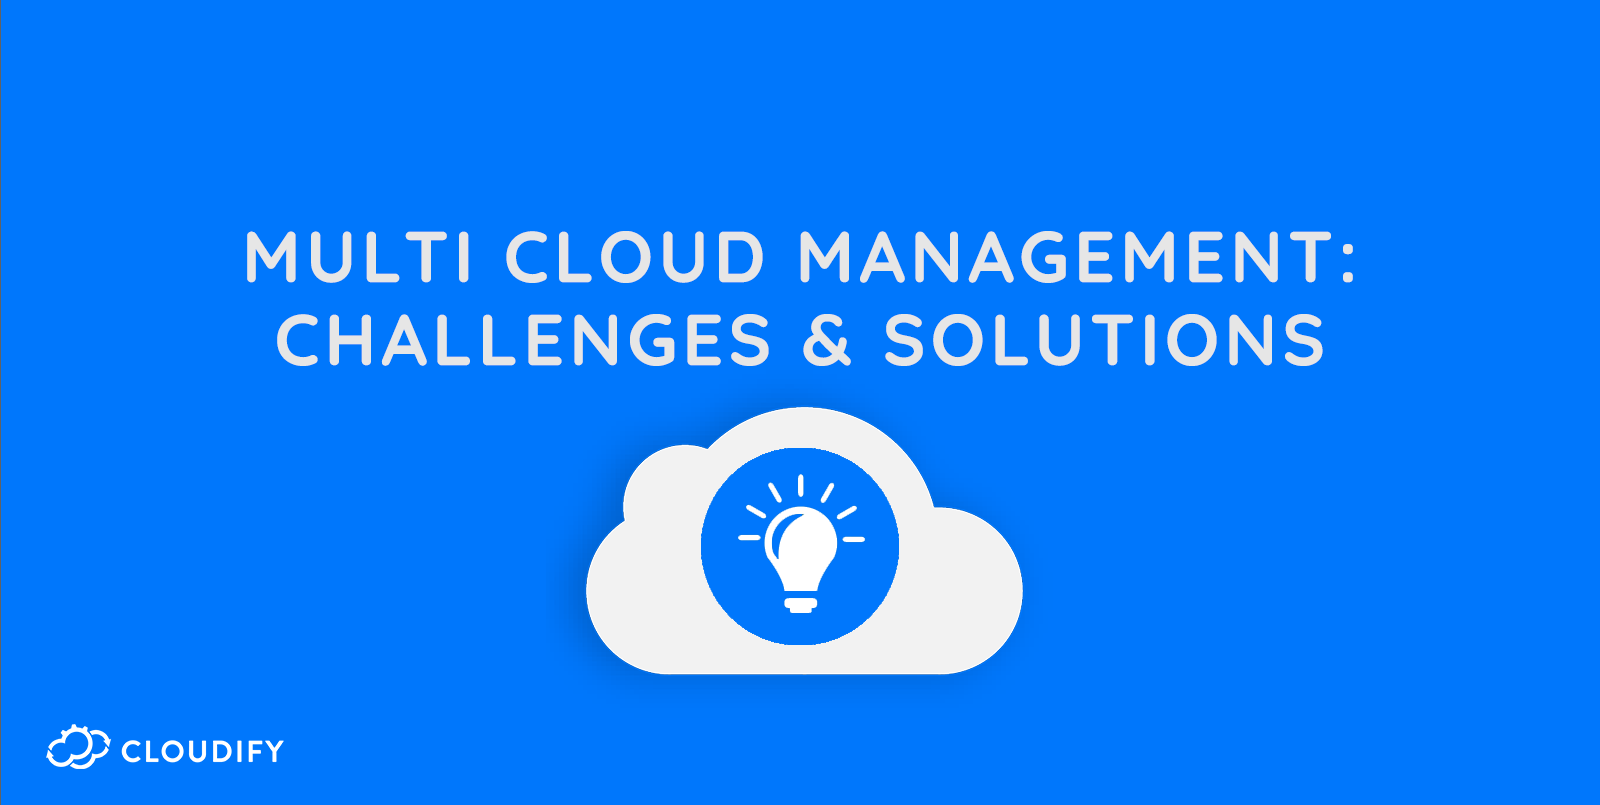 Multi Cloud & Cloud Management - Challenges and Solutions | Cloudify